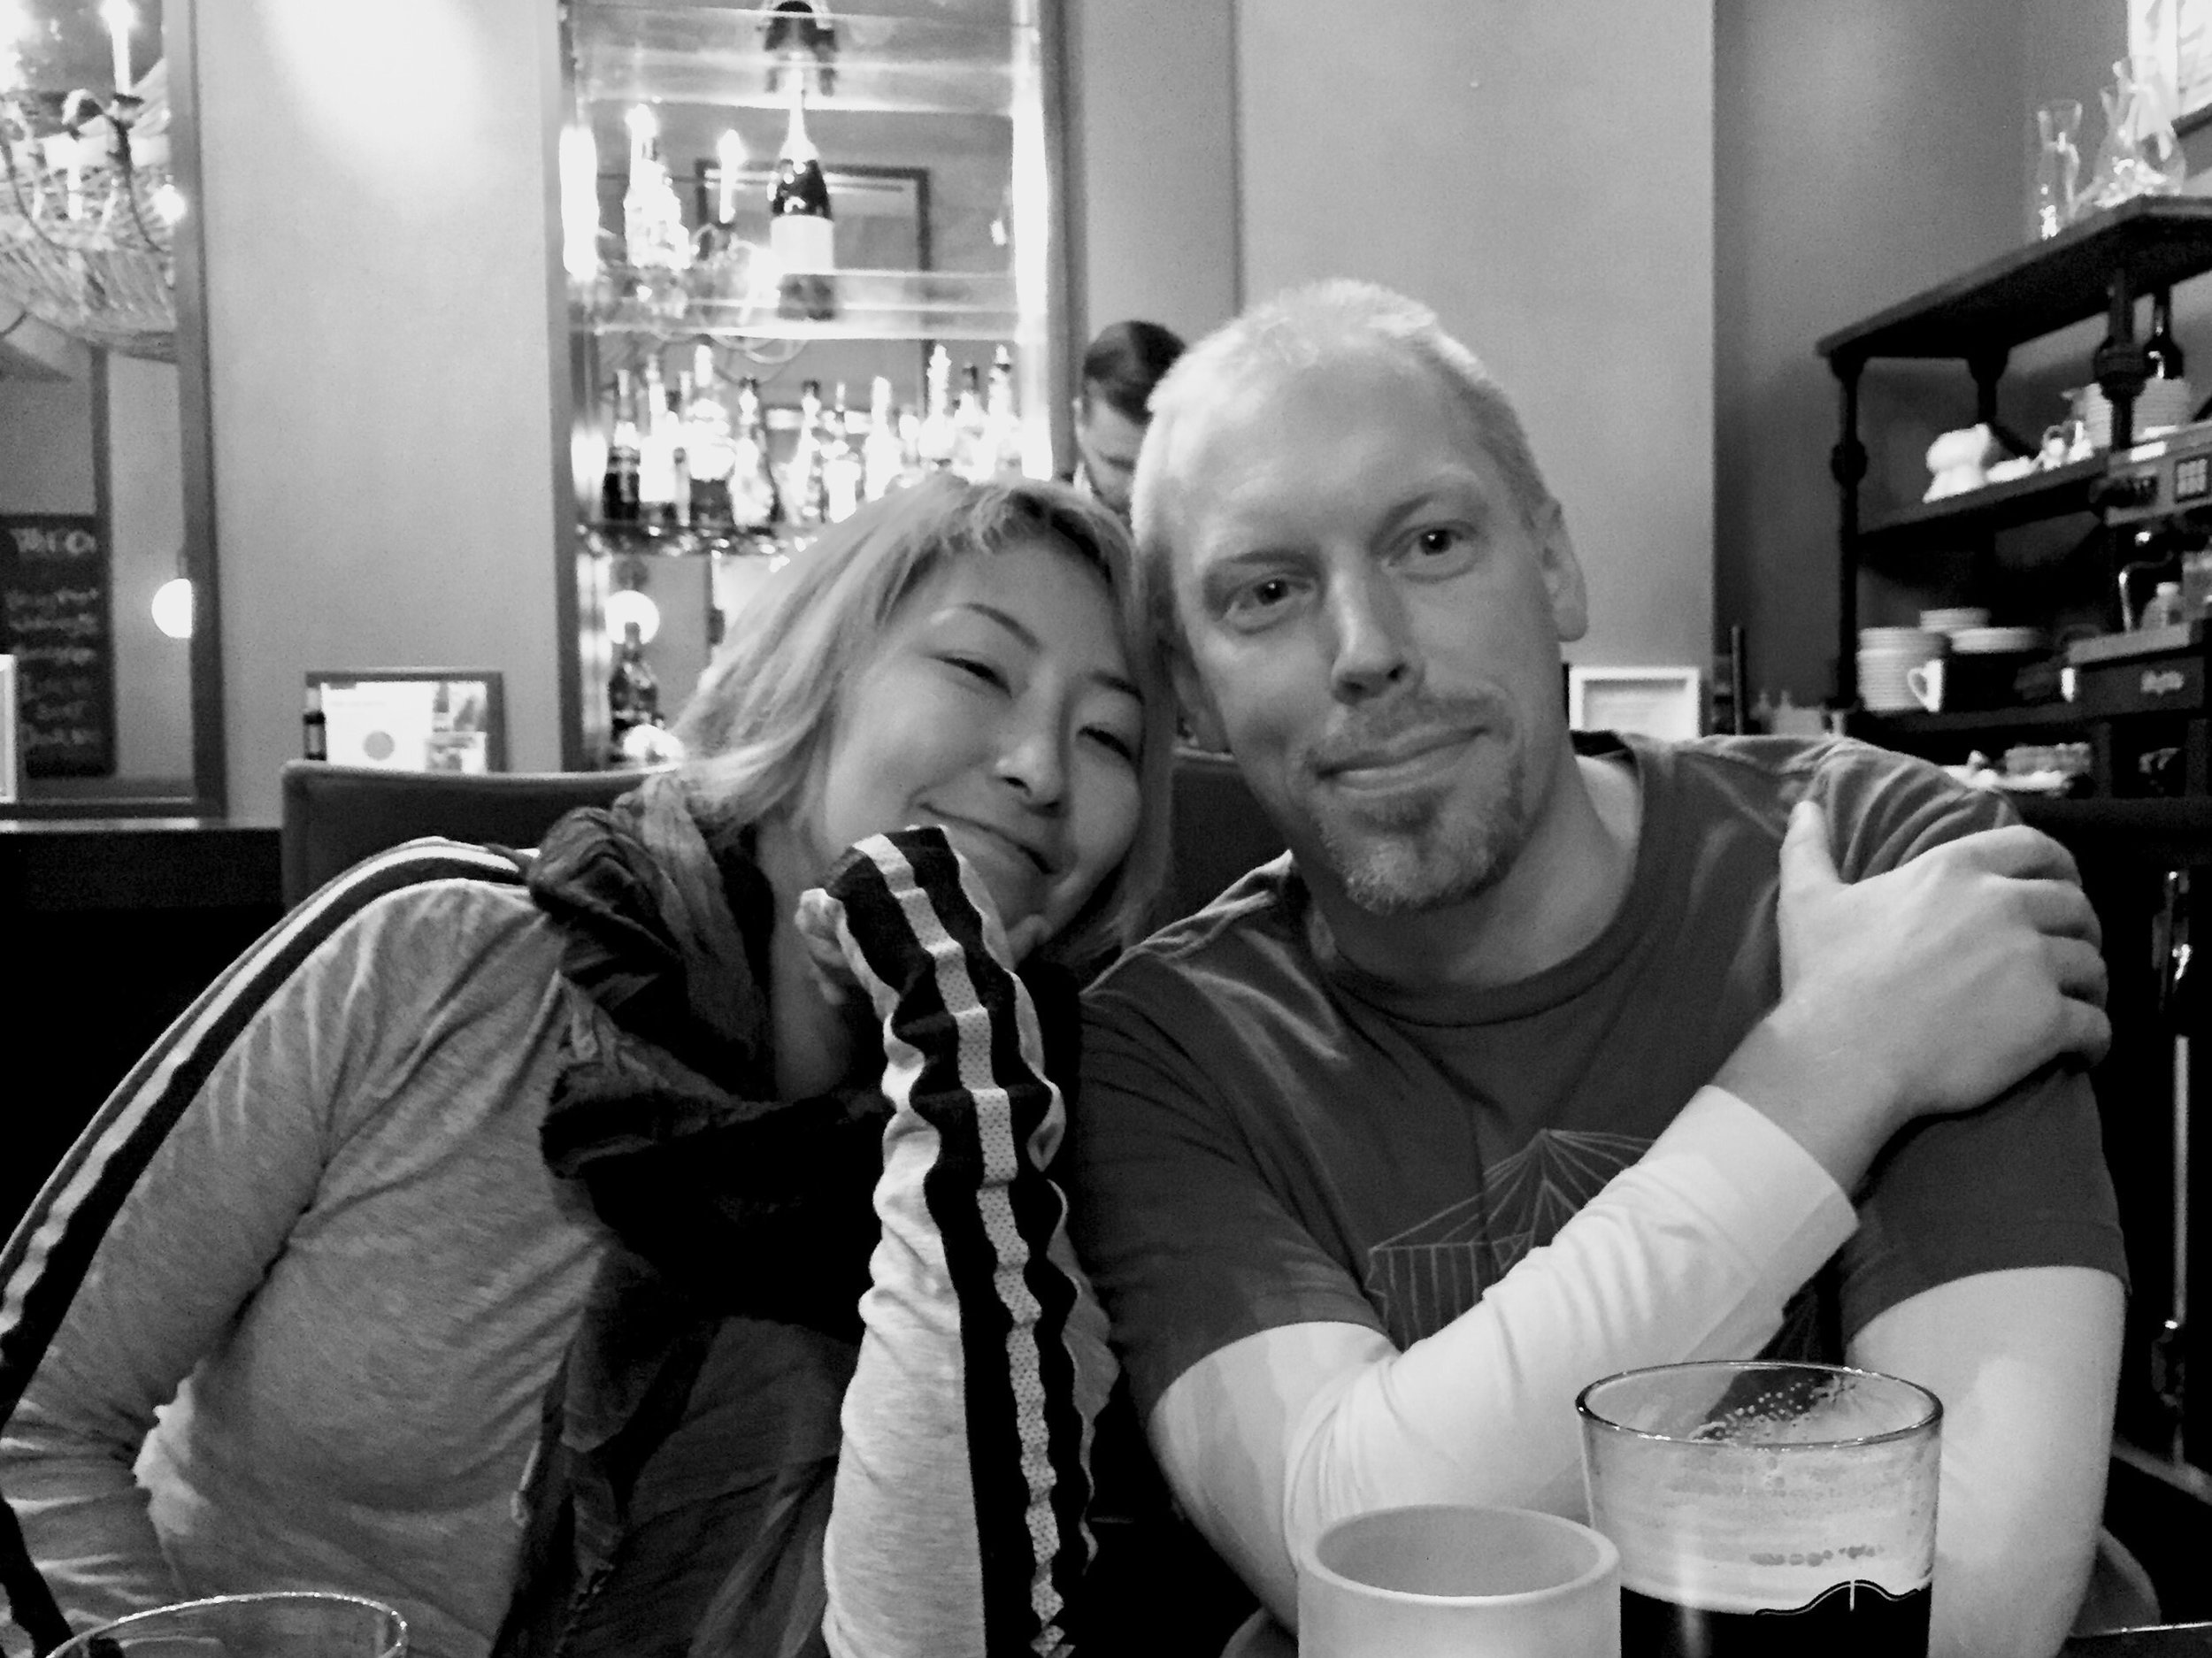 6-manami-and-steven-at-wine-ohs-in-calgary_30083661043_o.jpg